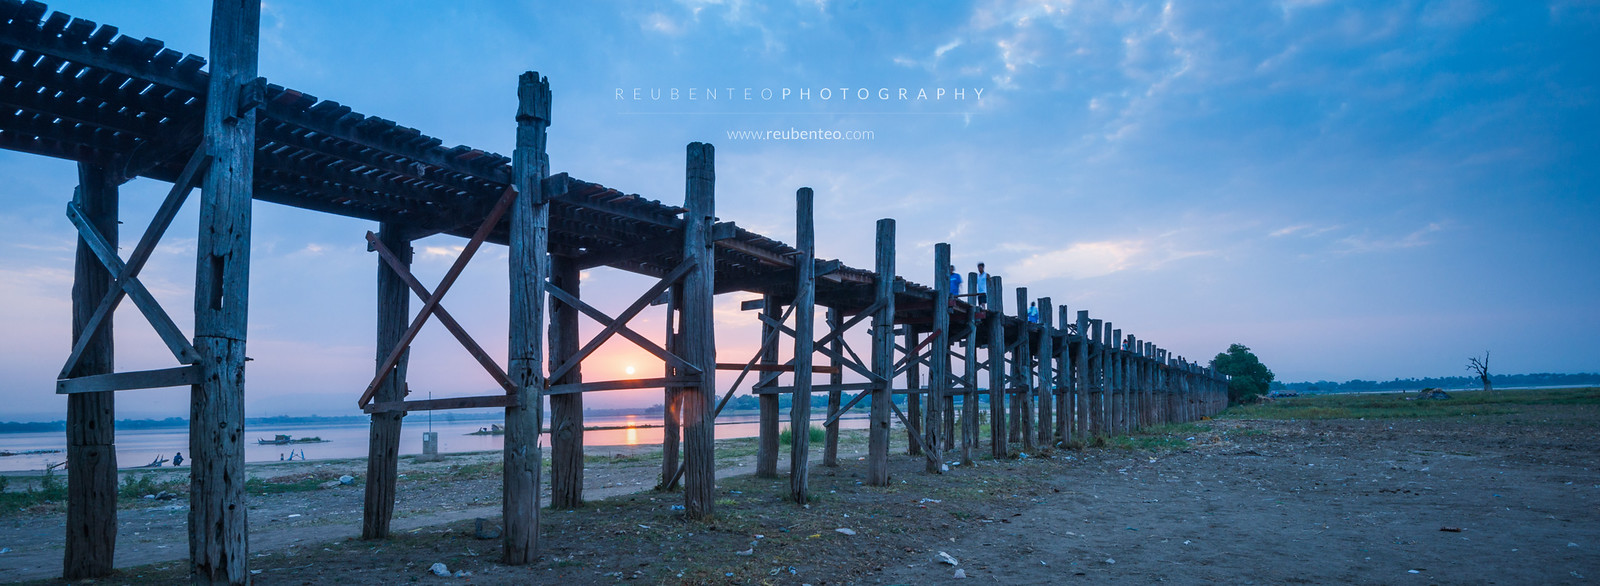 U-Bein Bridge Sunrise